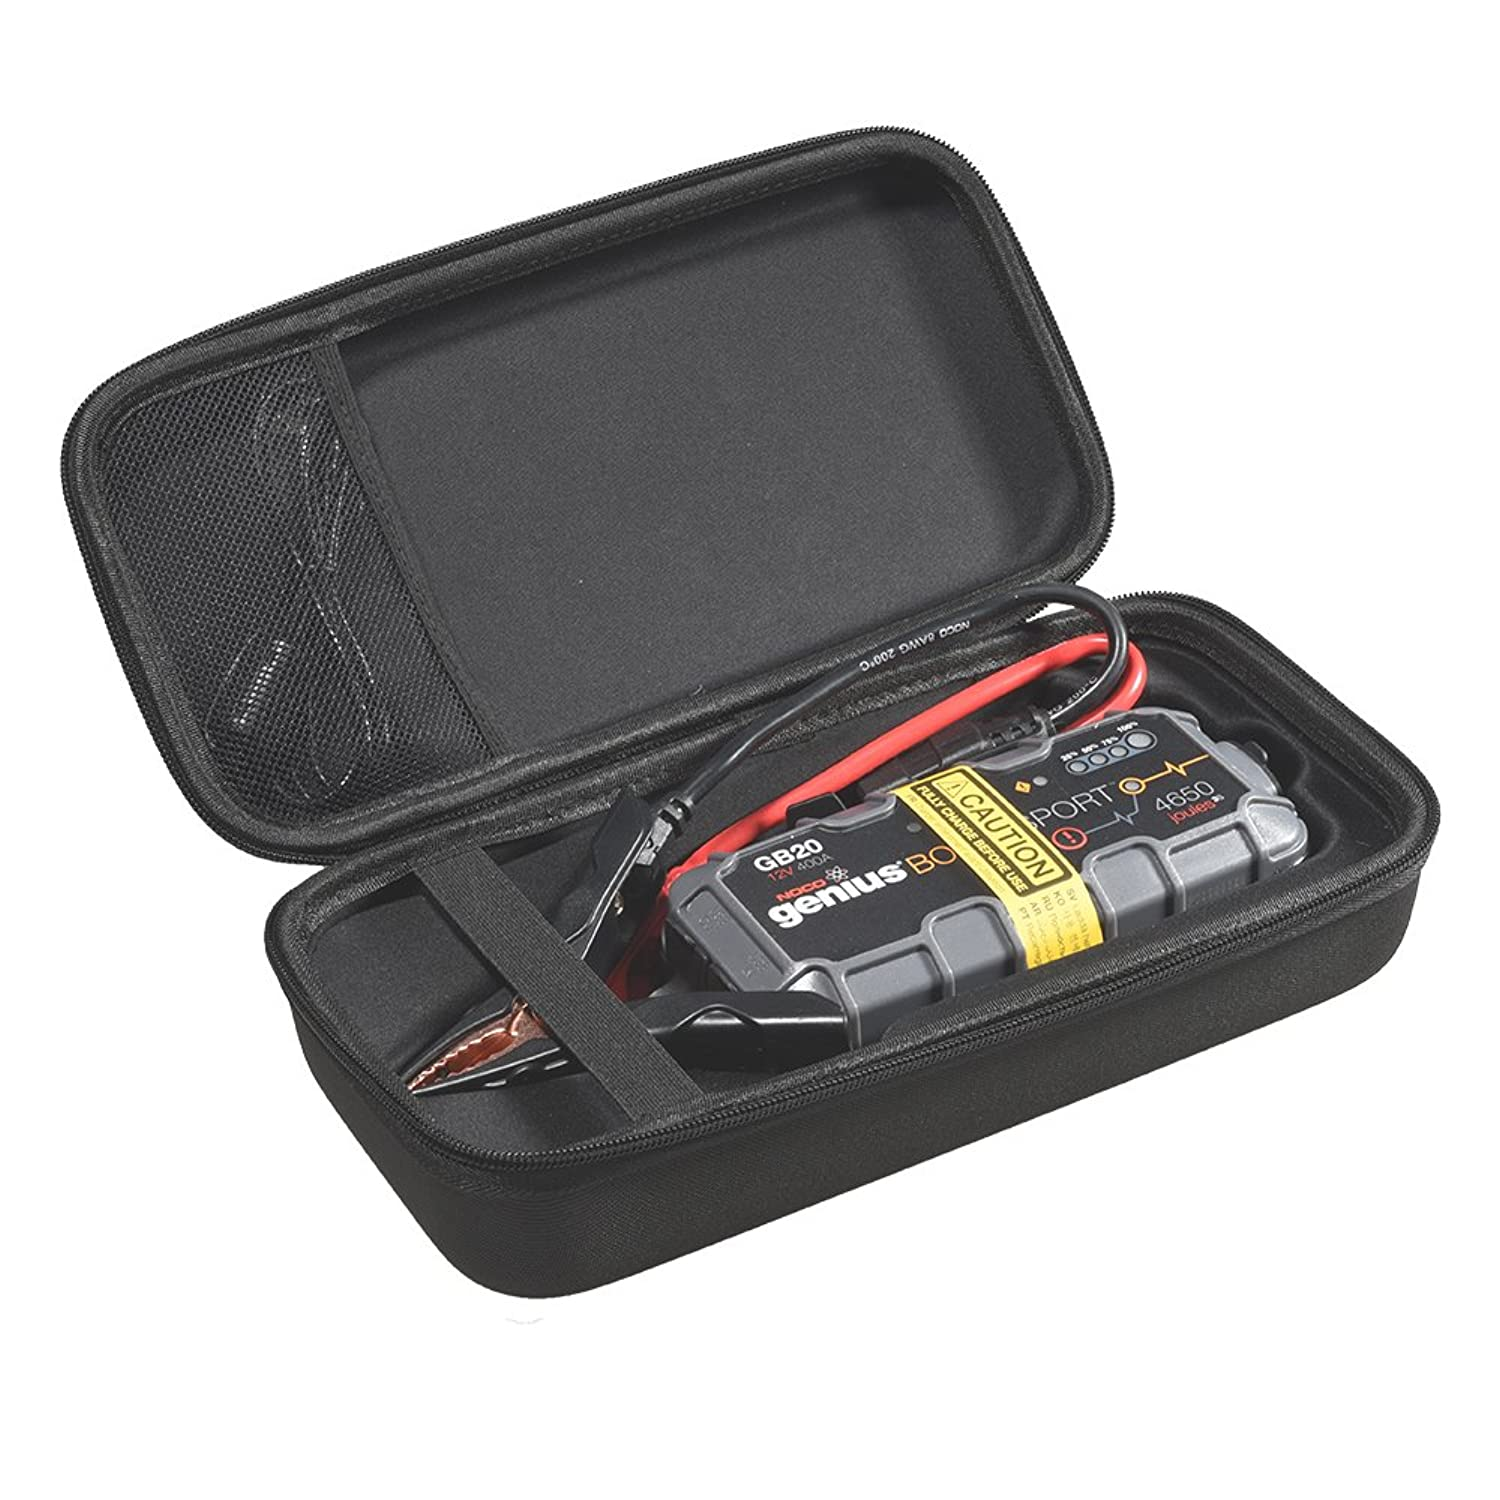 Aproca Hard Travel Case Compatible with NOCO Genius Boost Sport GB20 400 Amp 12V UltraSafe Lithium Jump Starter